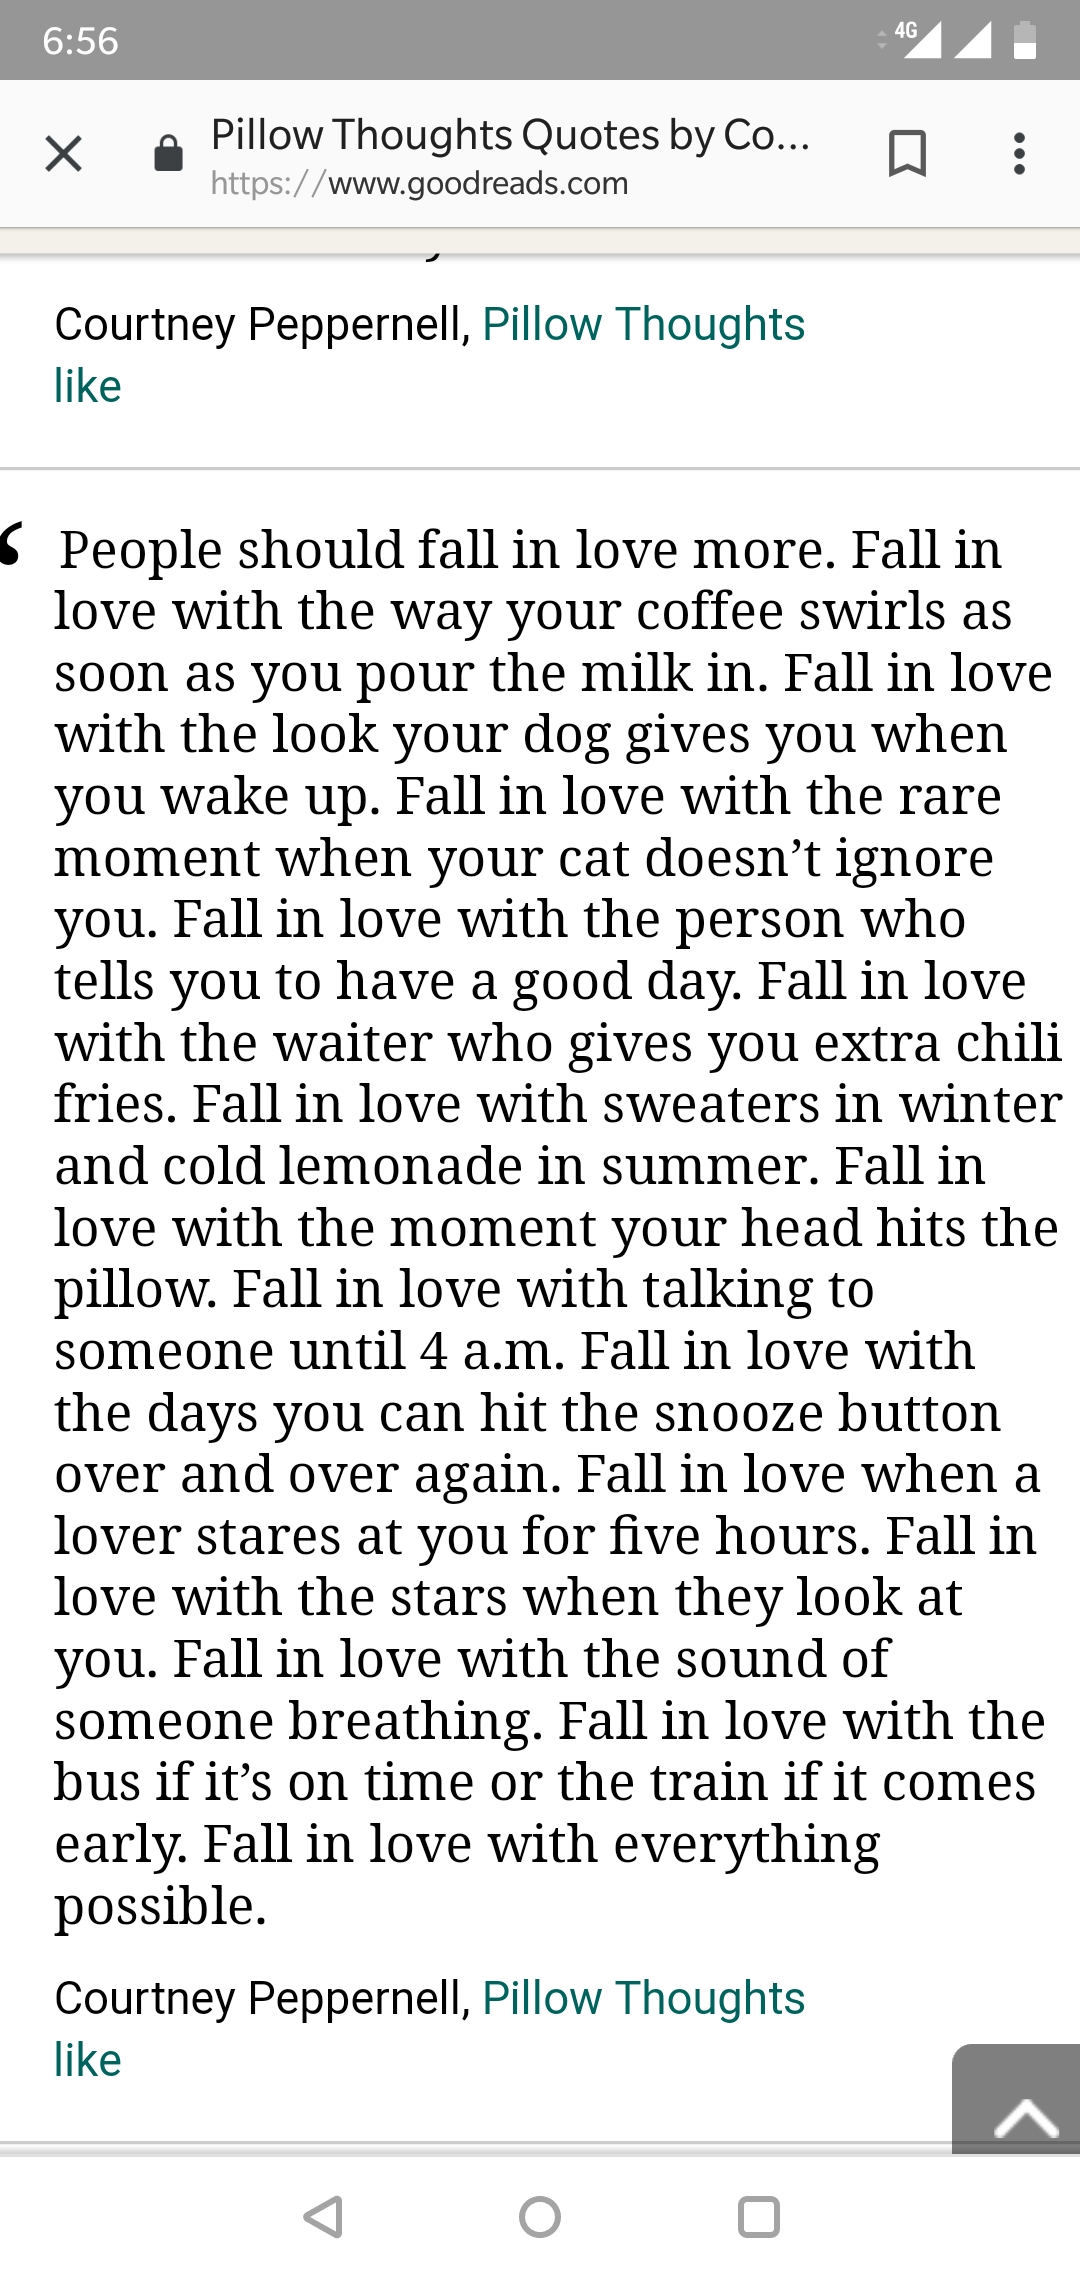 People should fall in love more. Pillow Thoughts-Courtney Peppernell [1080 X 2280]